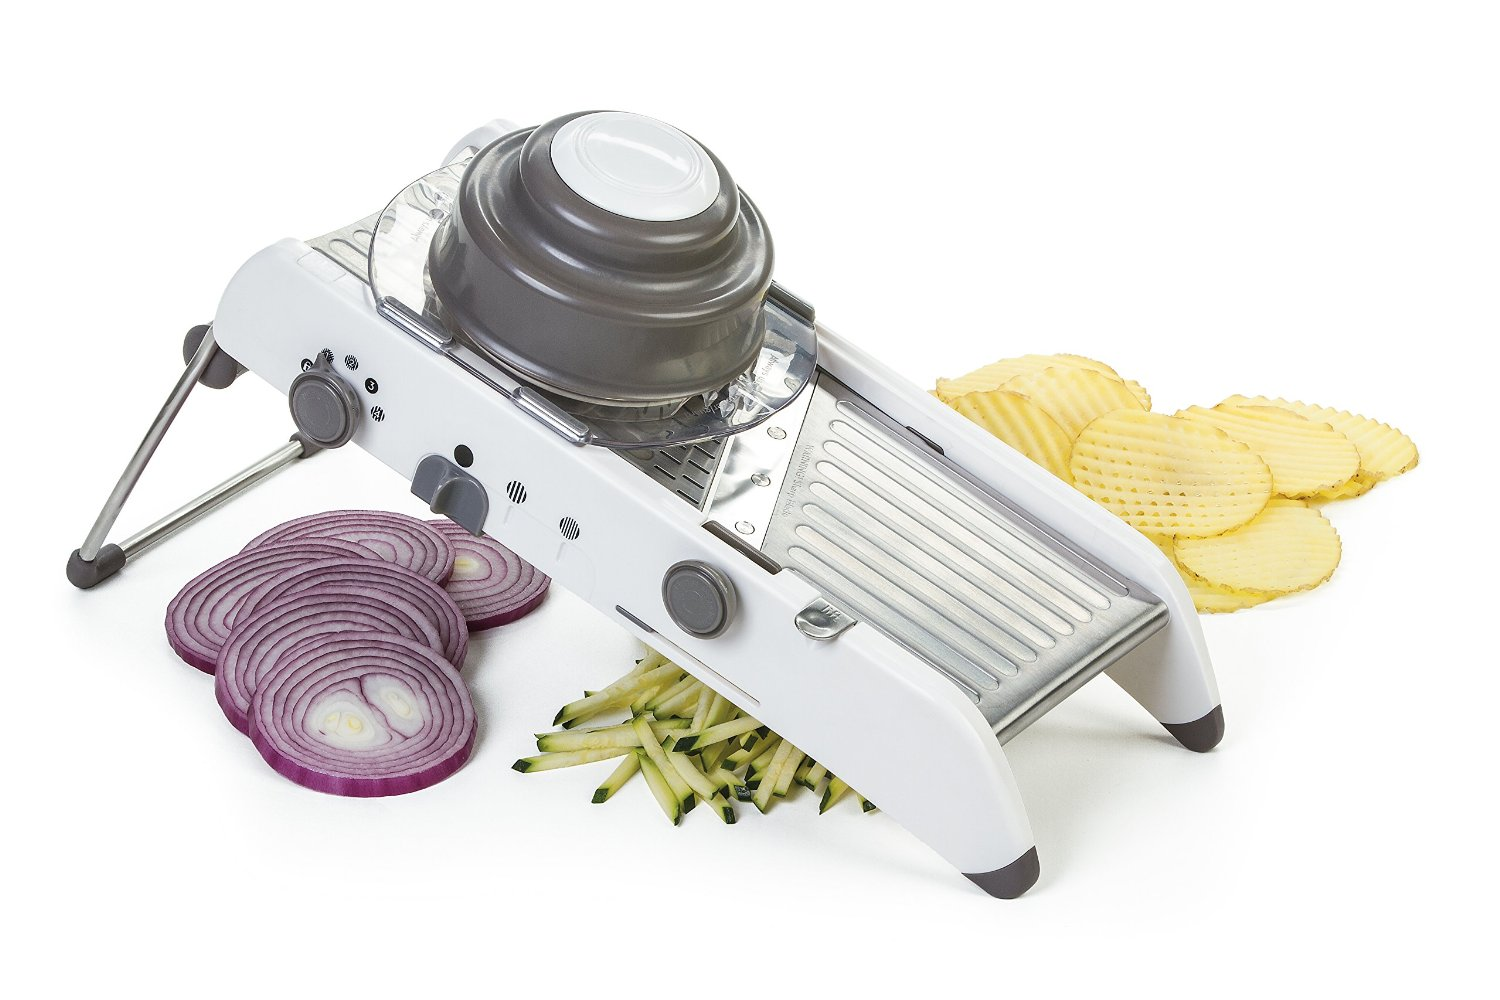 Progressive International PL8 Mandoline Slicer – 4 Adjustable Slicing Thicknesses, Extra-wide Stainless Slicing Deck